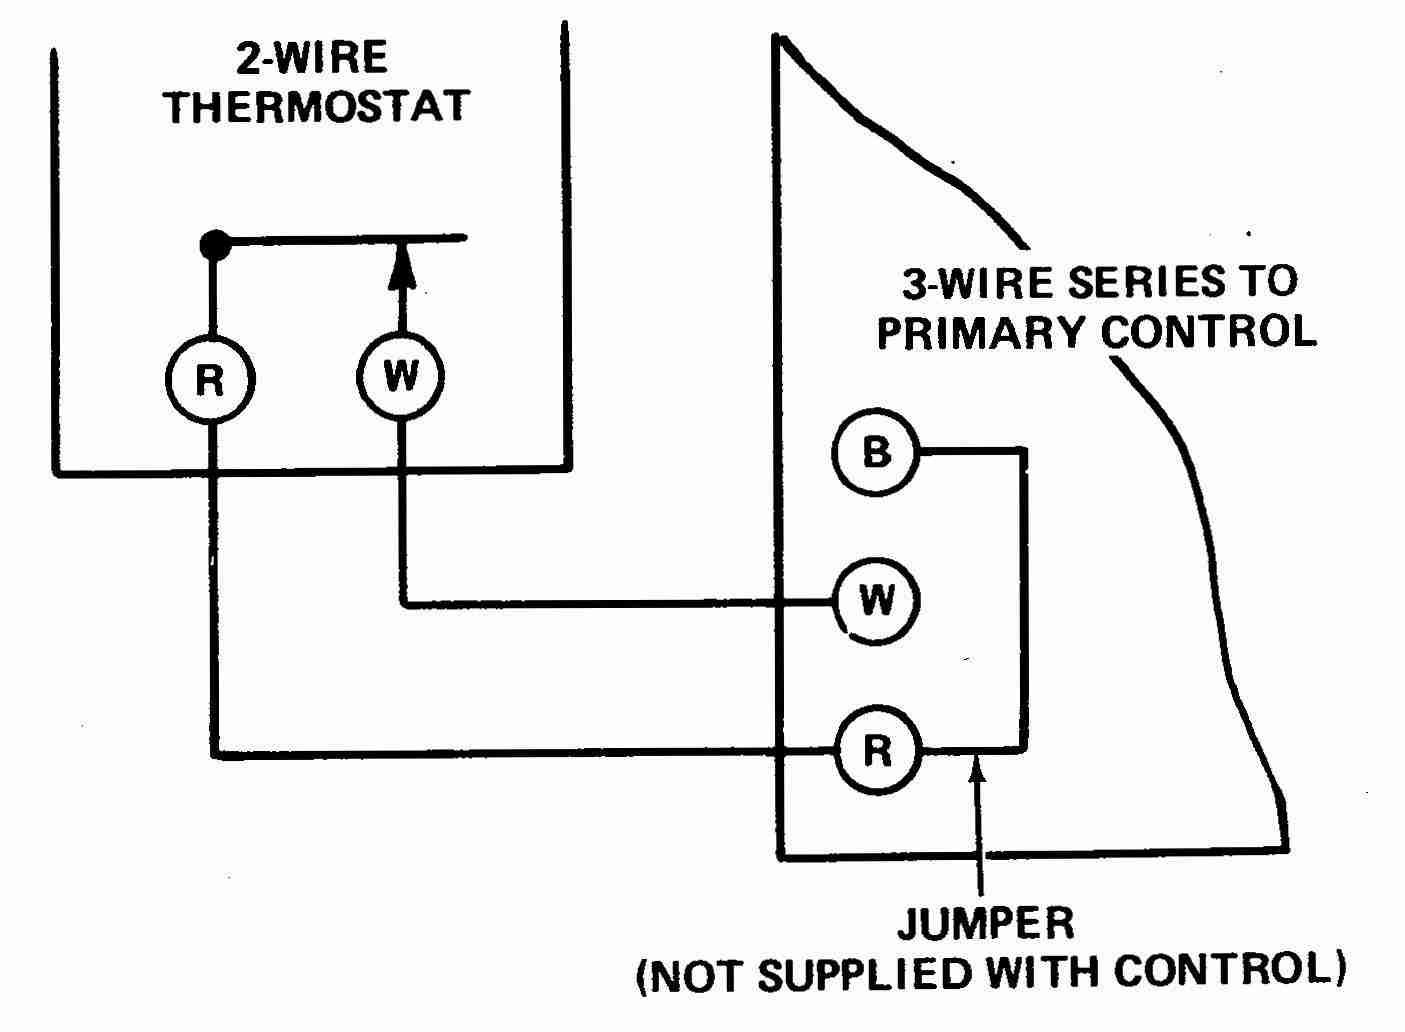 WR_1F90_006f15_DJFc how wire a white rodgers room thermostat, white rodgers thermostat Heat Pump Thermostat Wiring Diagrams at gsmx.co